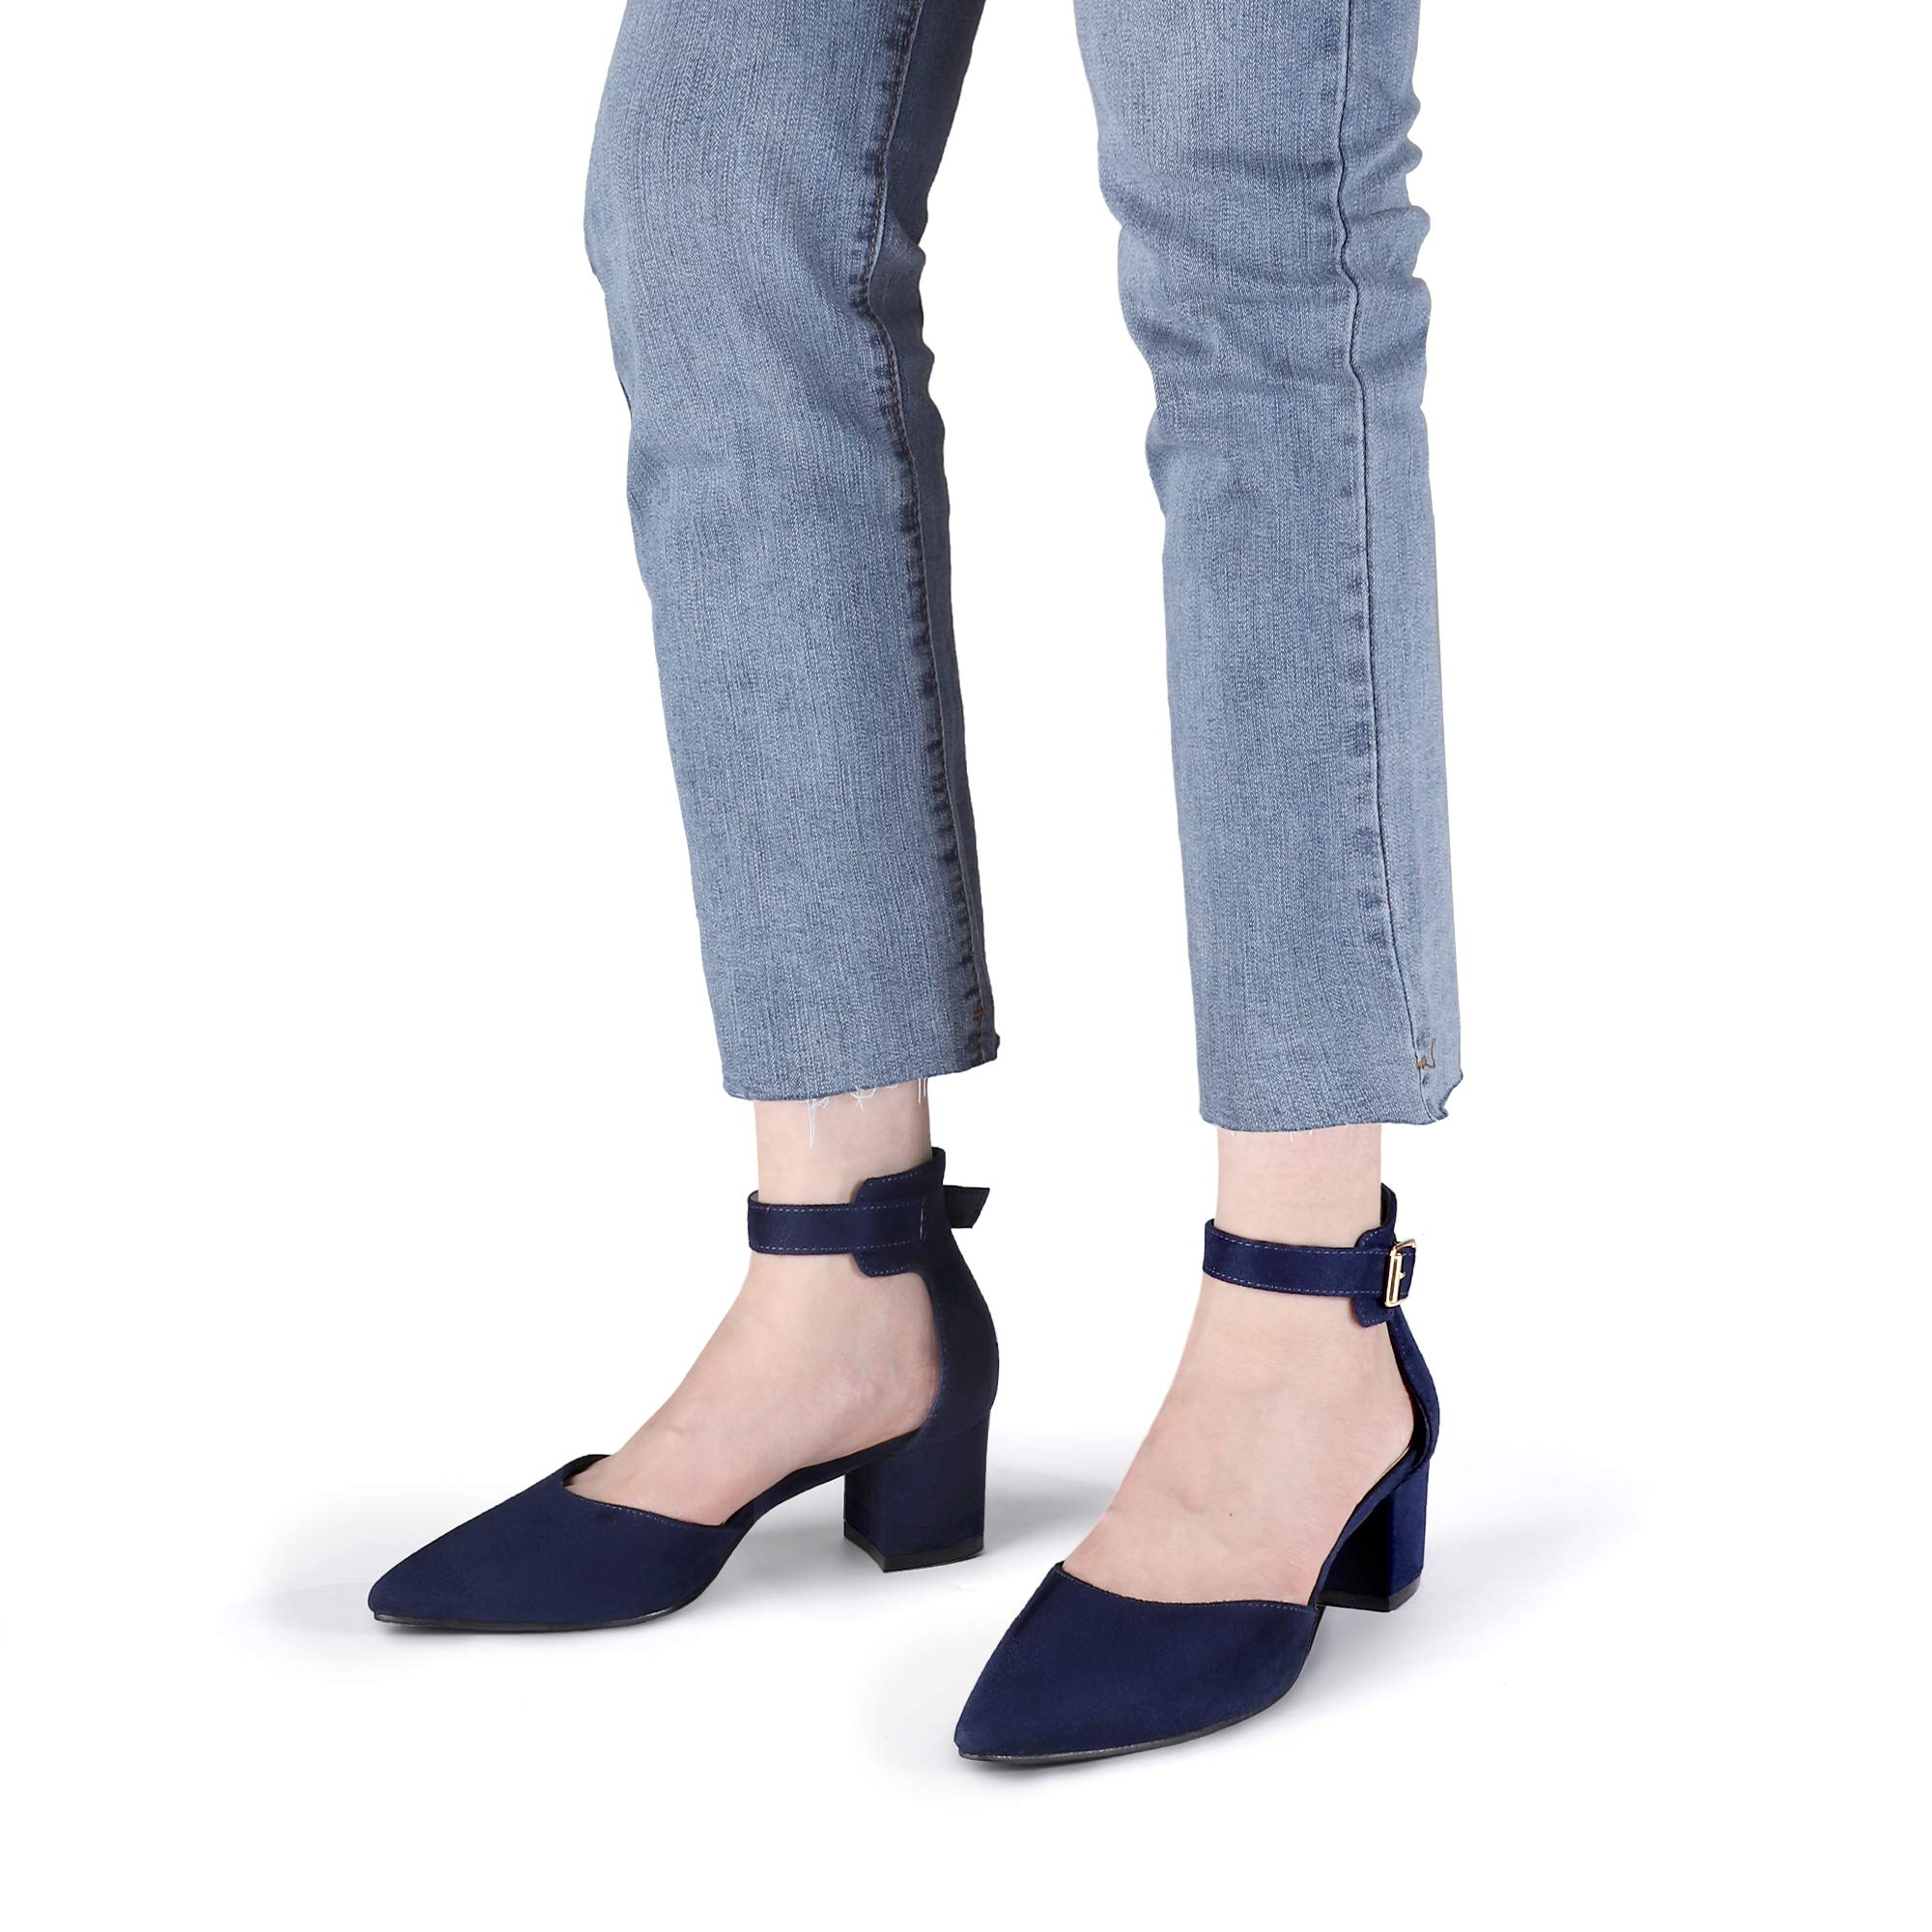 Pointed Toe Slip On Low Heels SHOWHOW Womens Dressy Color Block Pumps